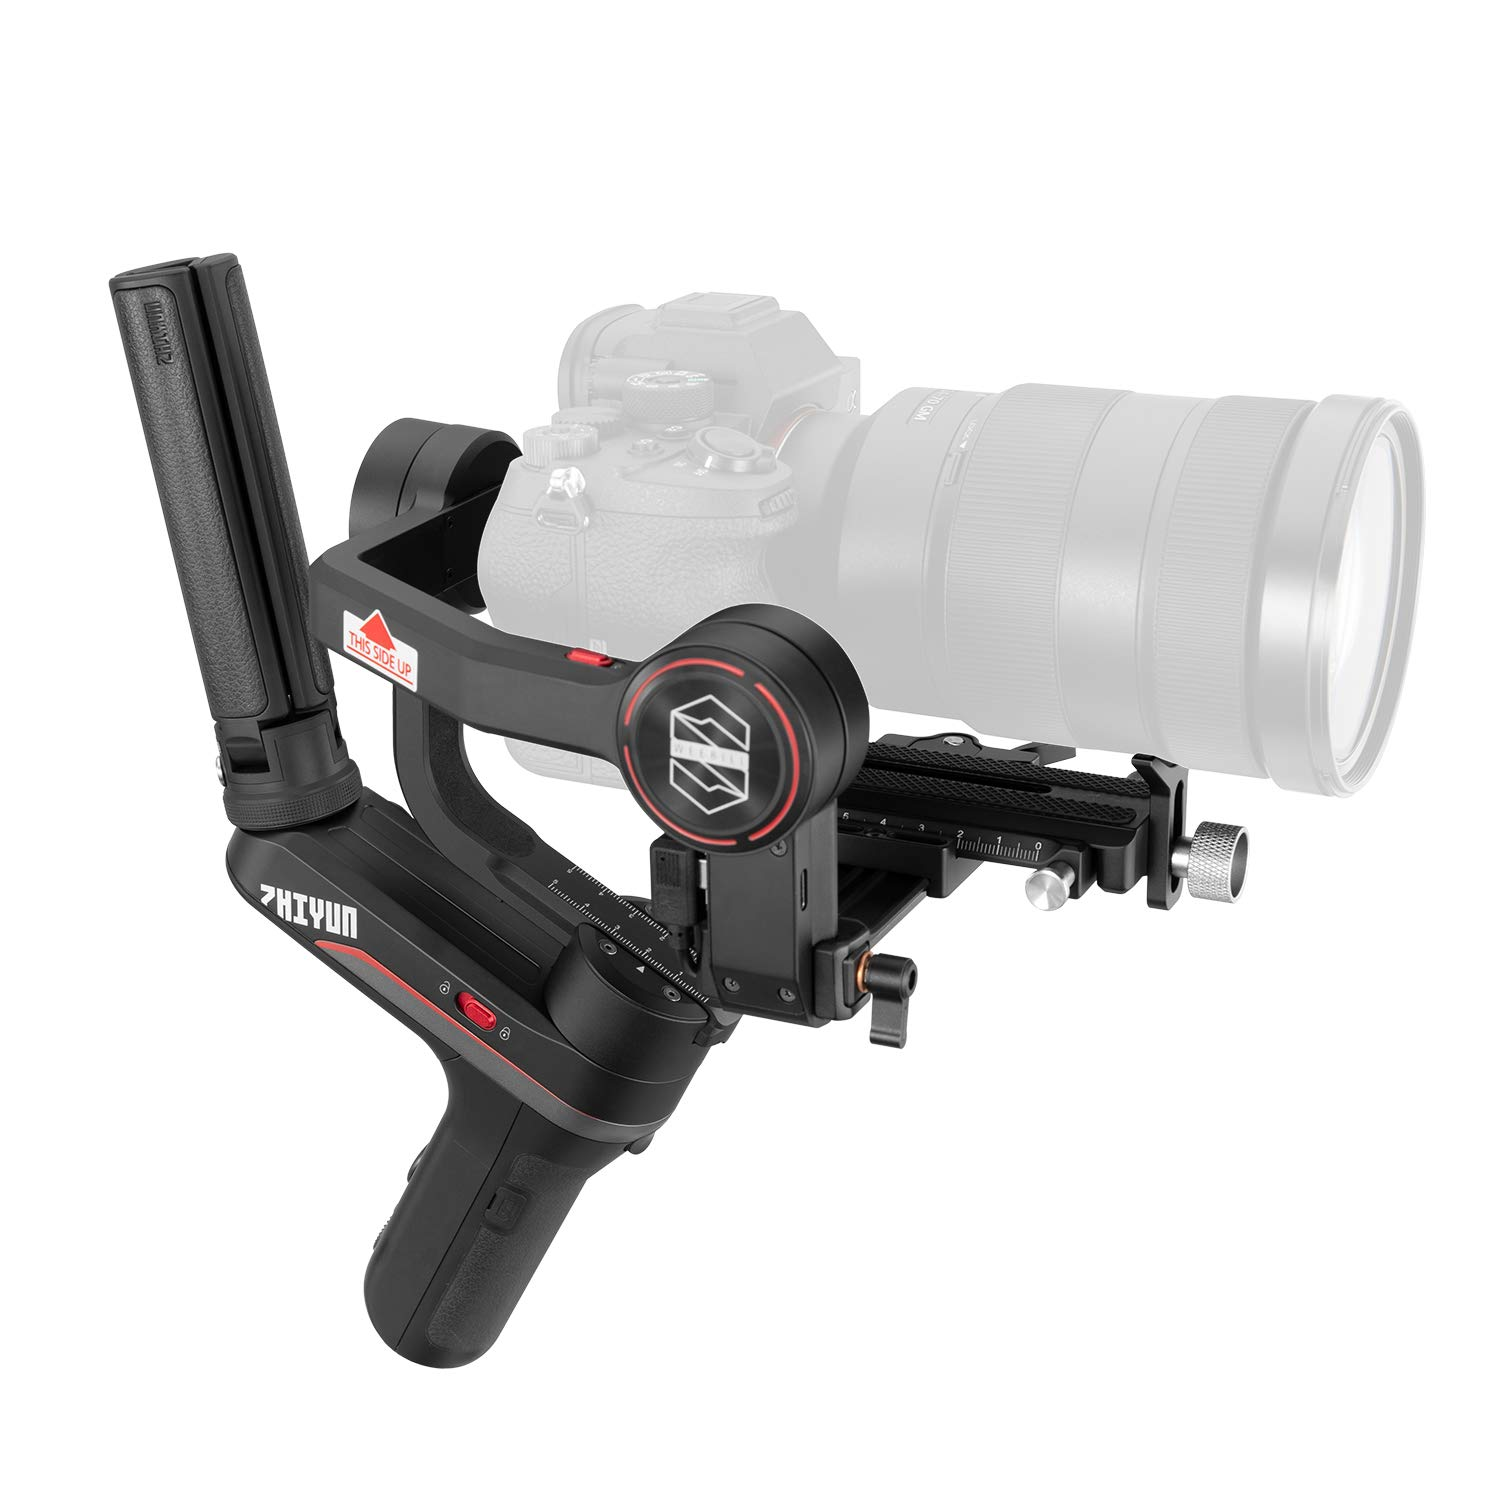 Zhiyun Weebill S [Official] 3-Axis Gimbal Stabilizer for Cameras by zhi yun